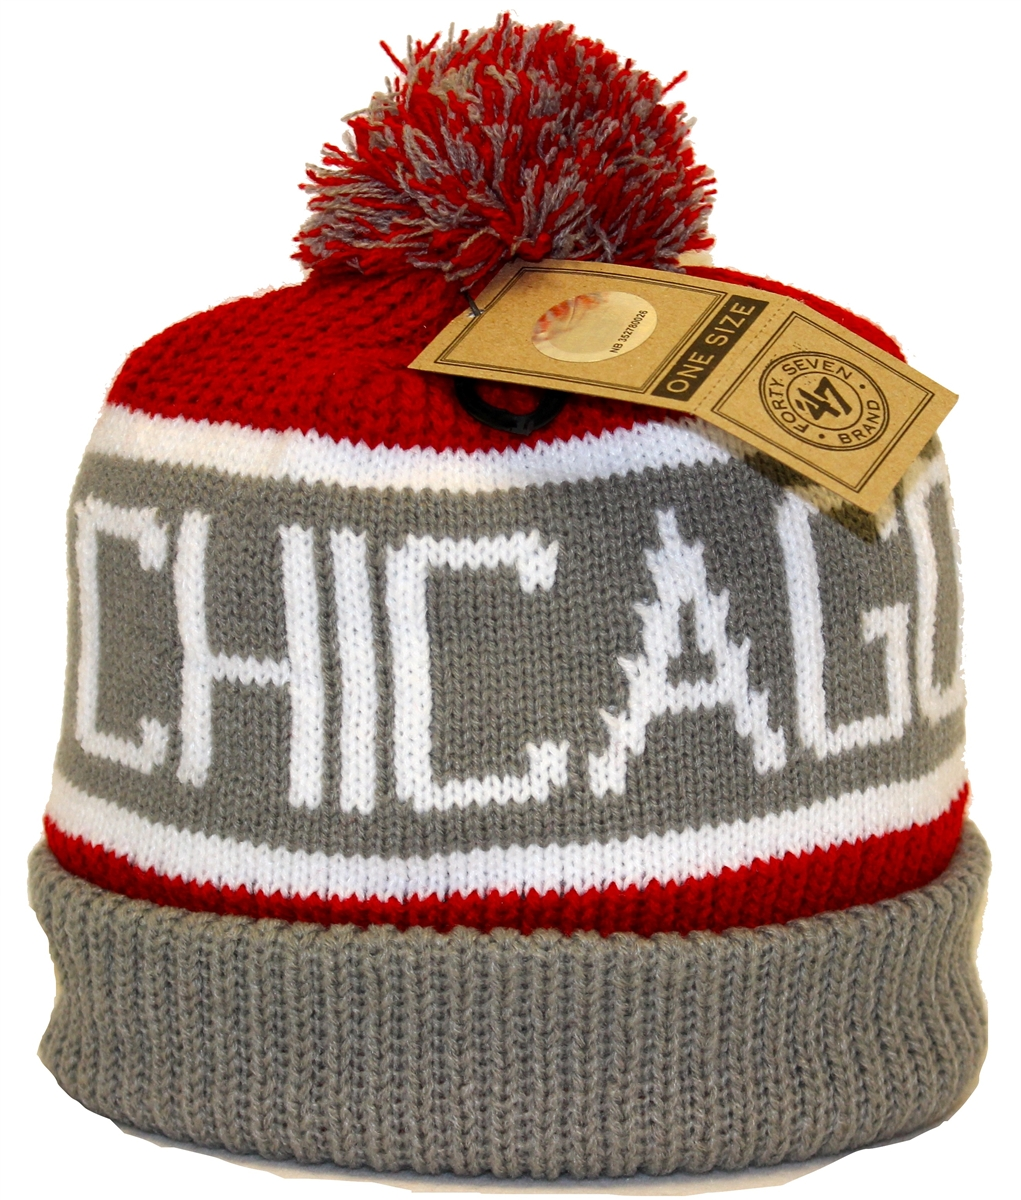 7b458ccb5f3 The 47 Brand Calgary Chicago Bulls Gray Red White Beanie